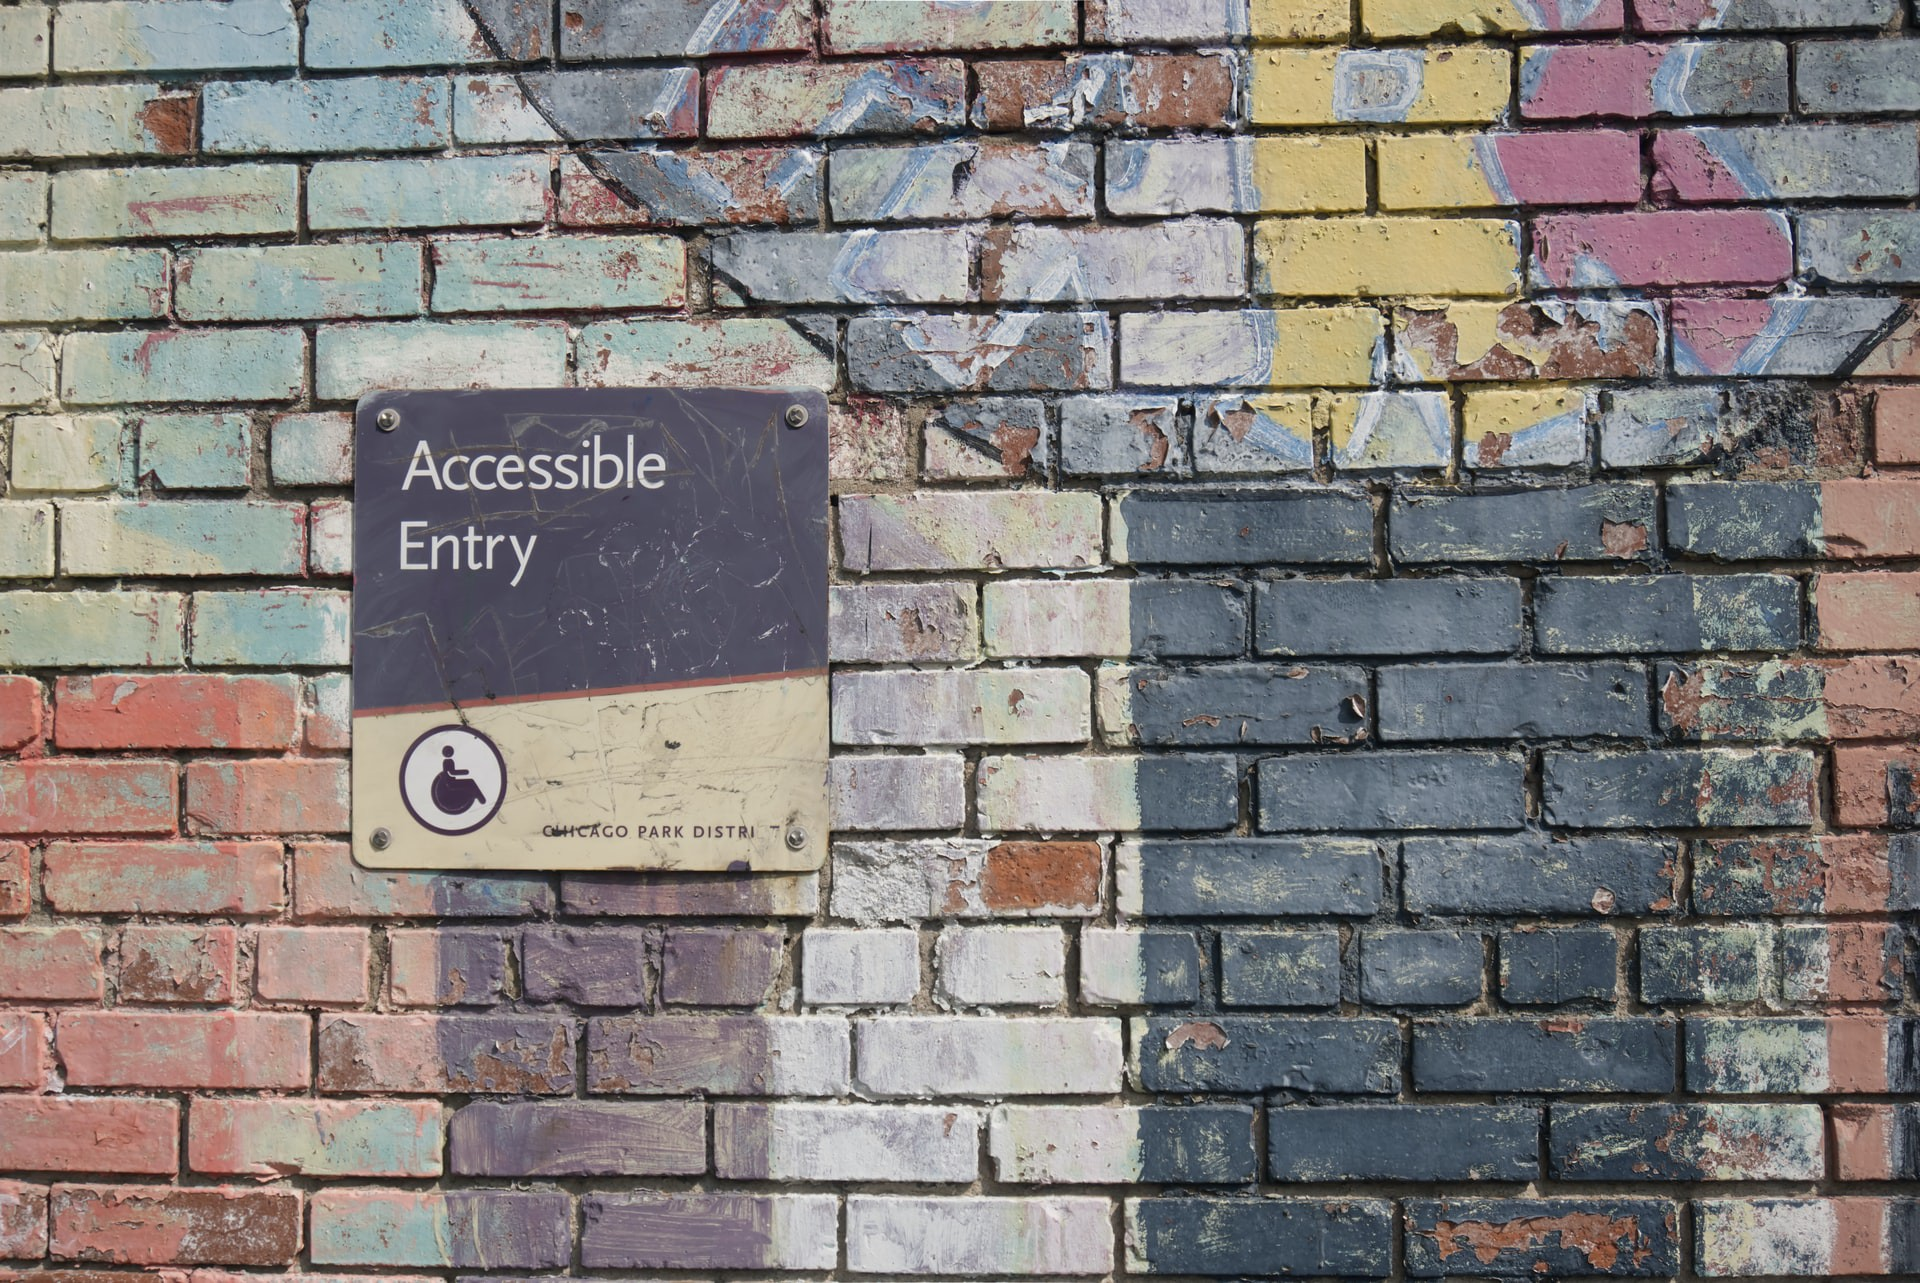 How Accessible Is Your Business?